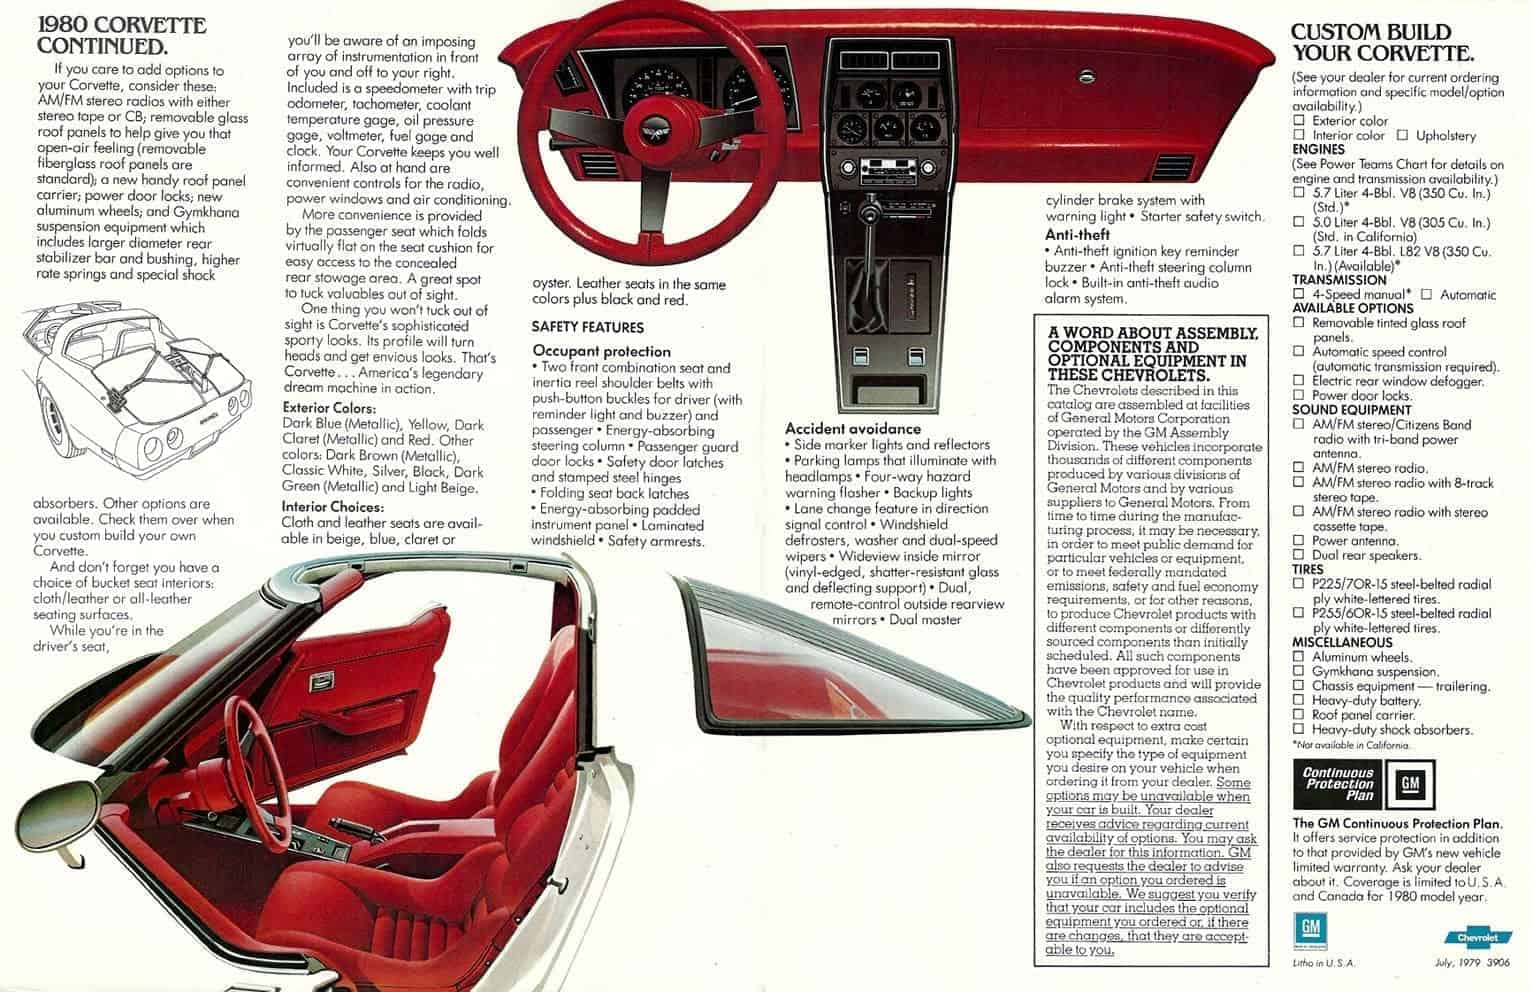 1980 chevrolet corvette original ad